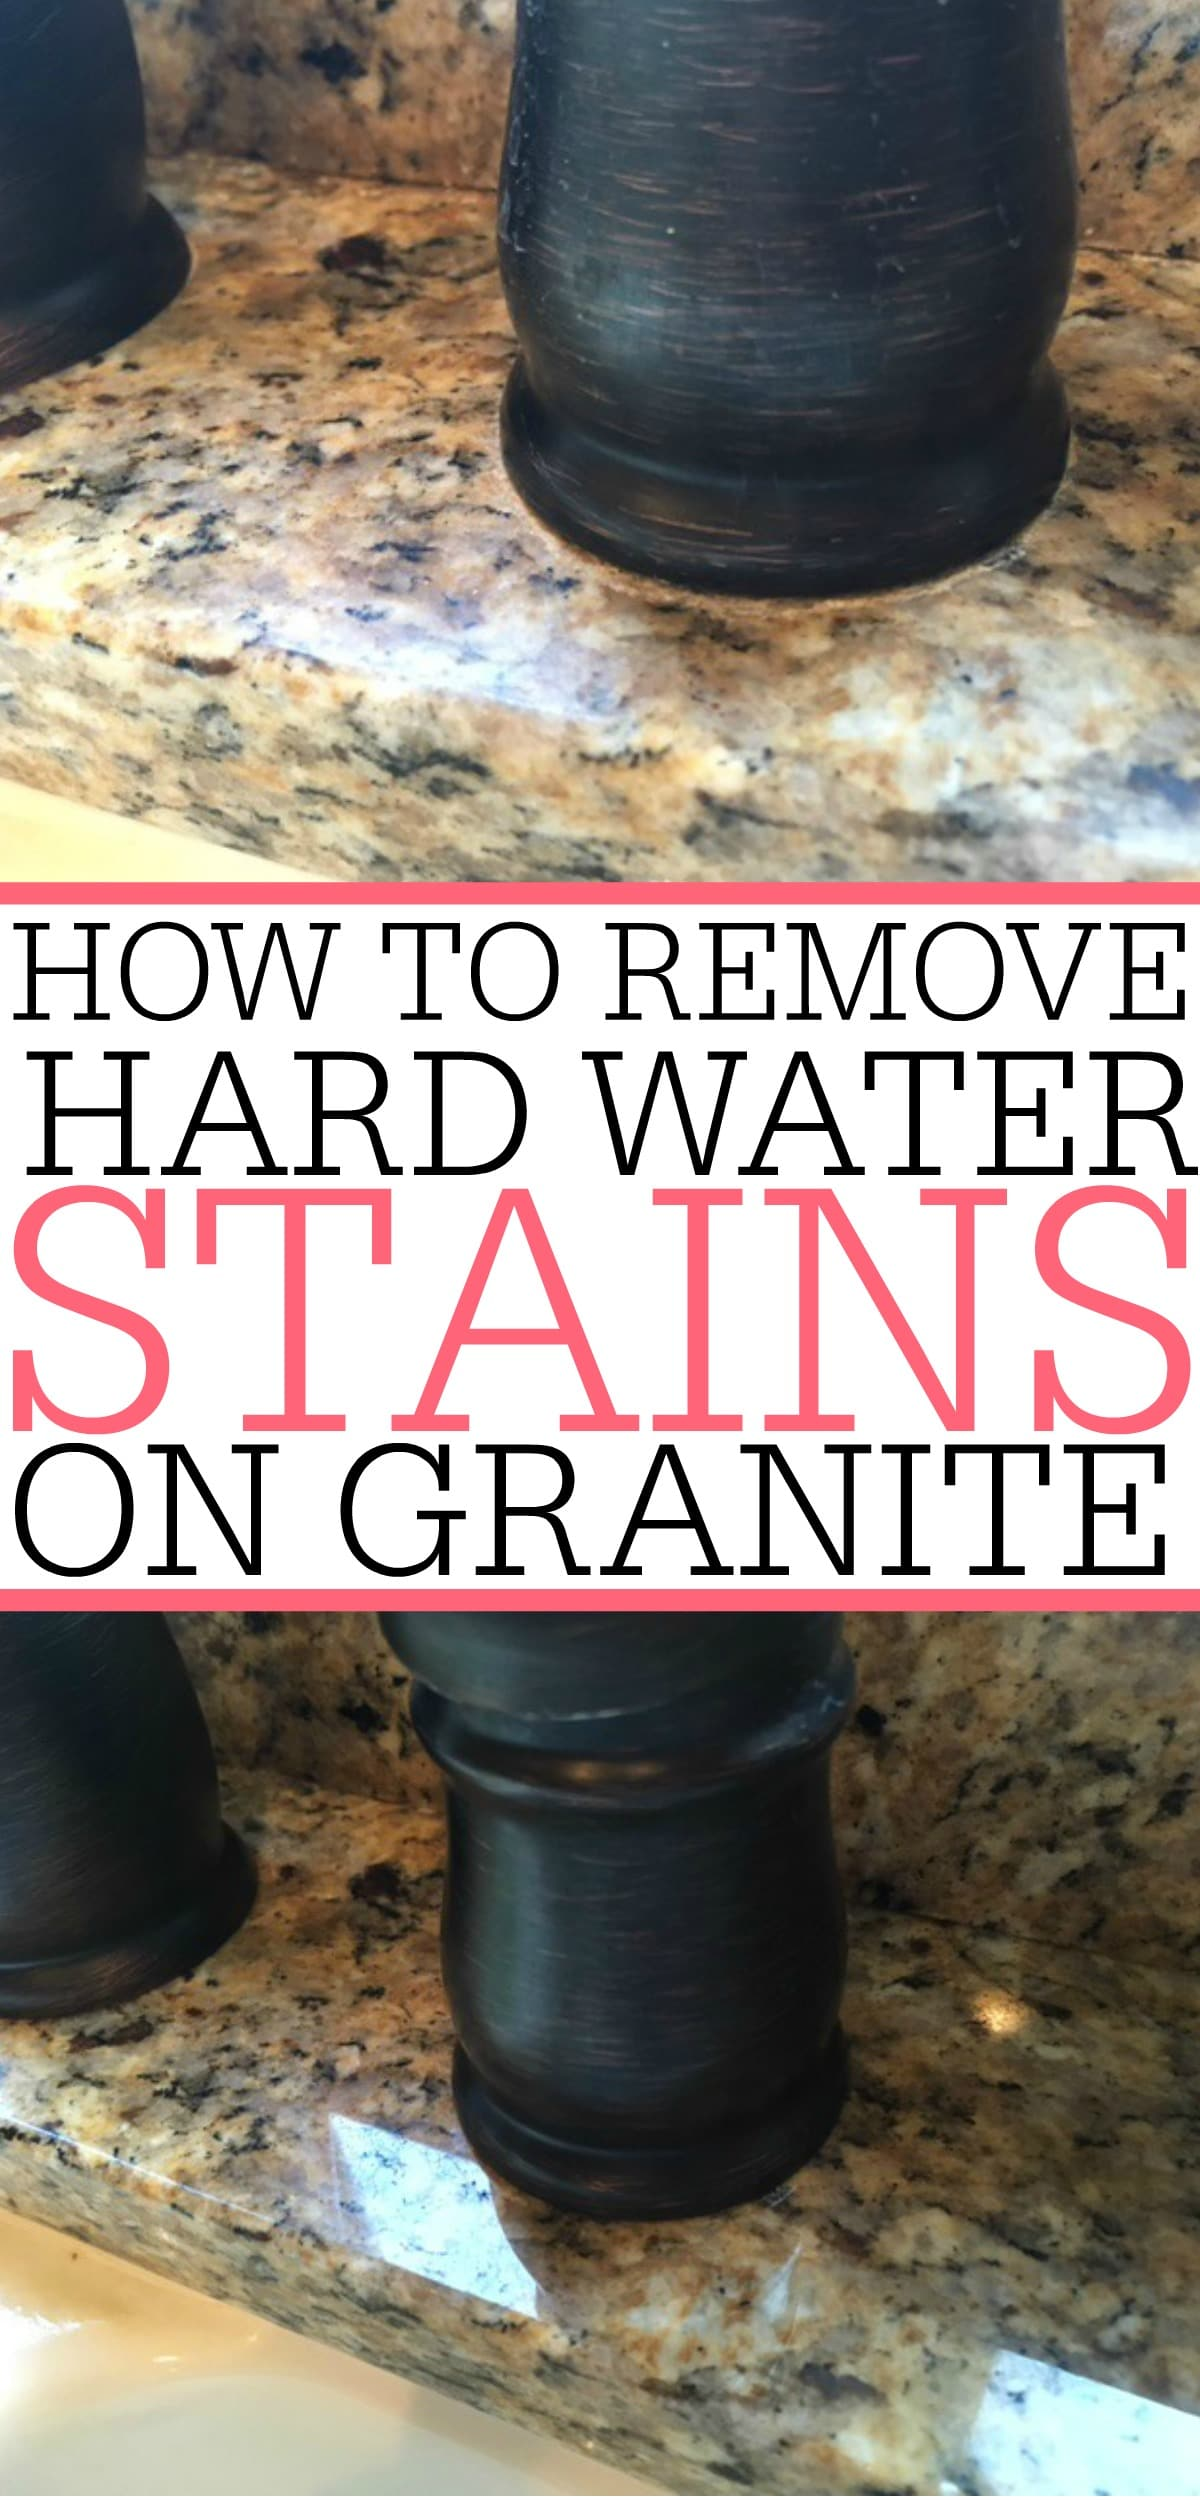 How To Remove Hard Water Stains From Granite Countertops How To Get Hard Water Stains Off Granite Mycoffeepot Org